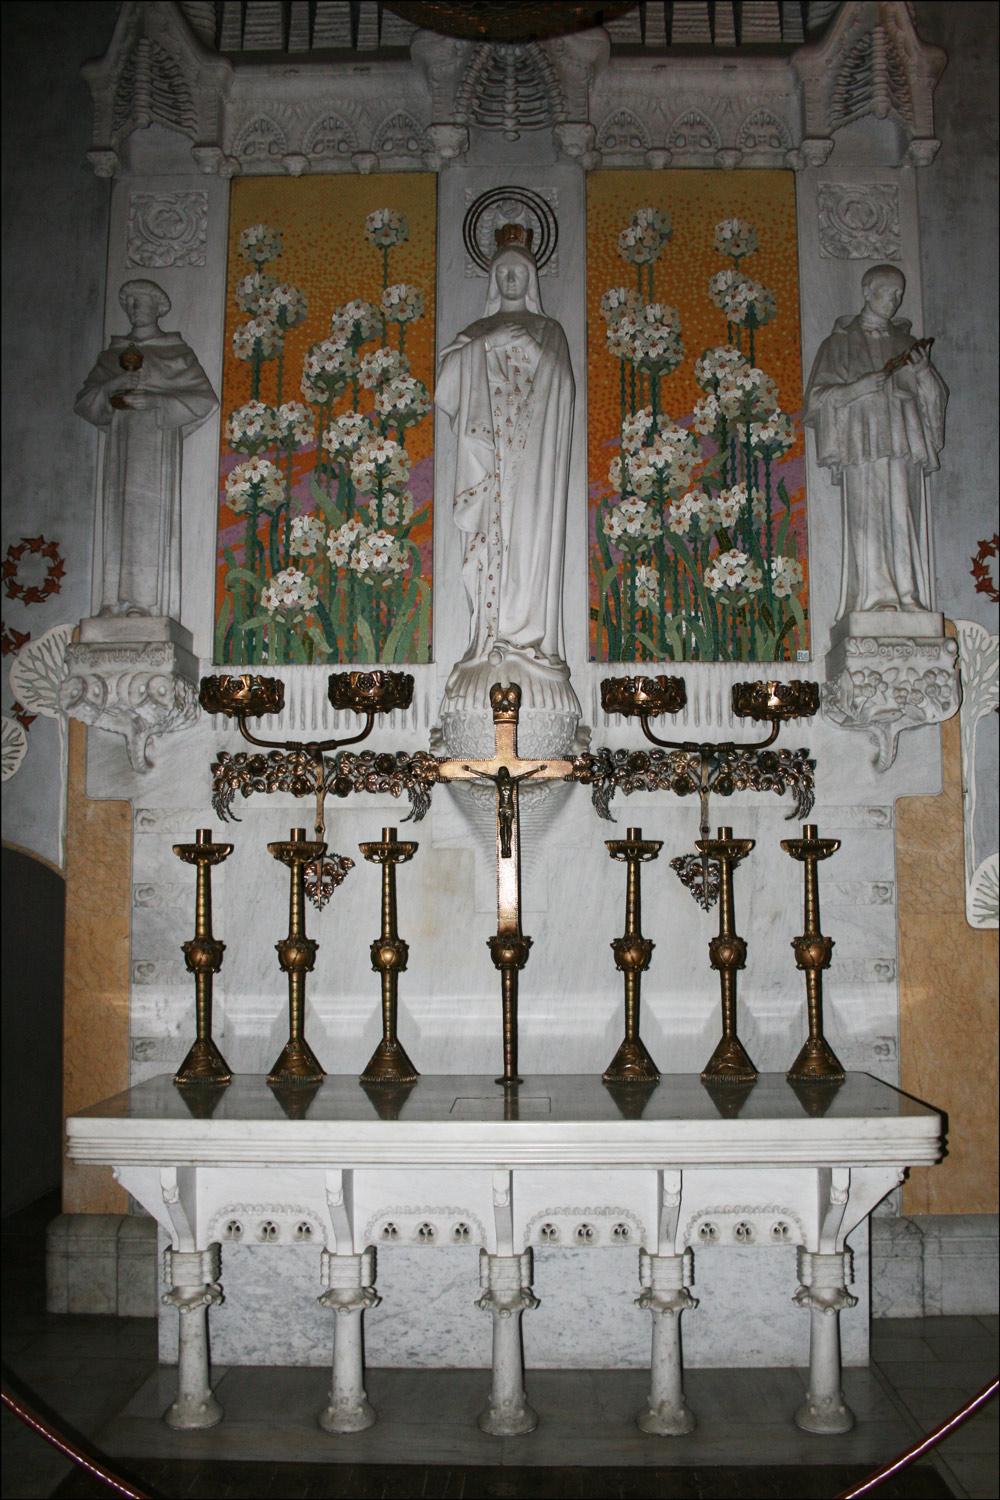 The Chapel of the Immaculate Conception